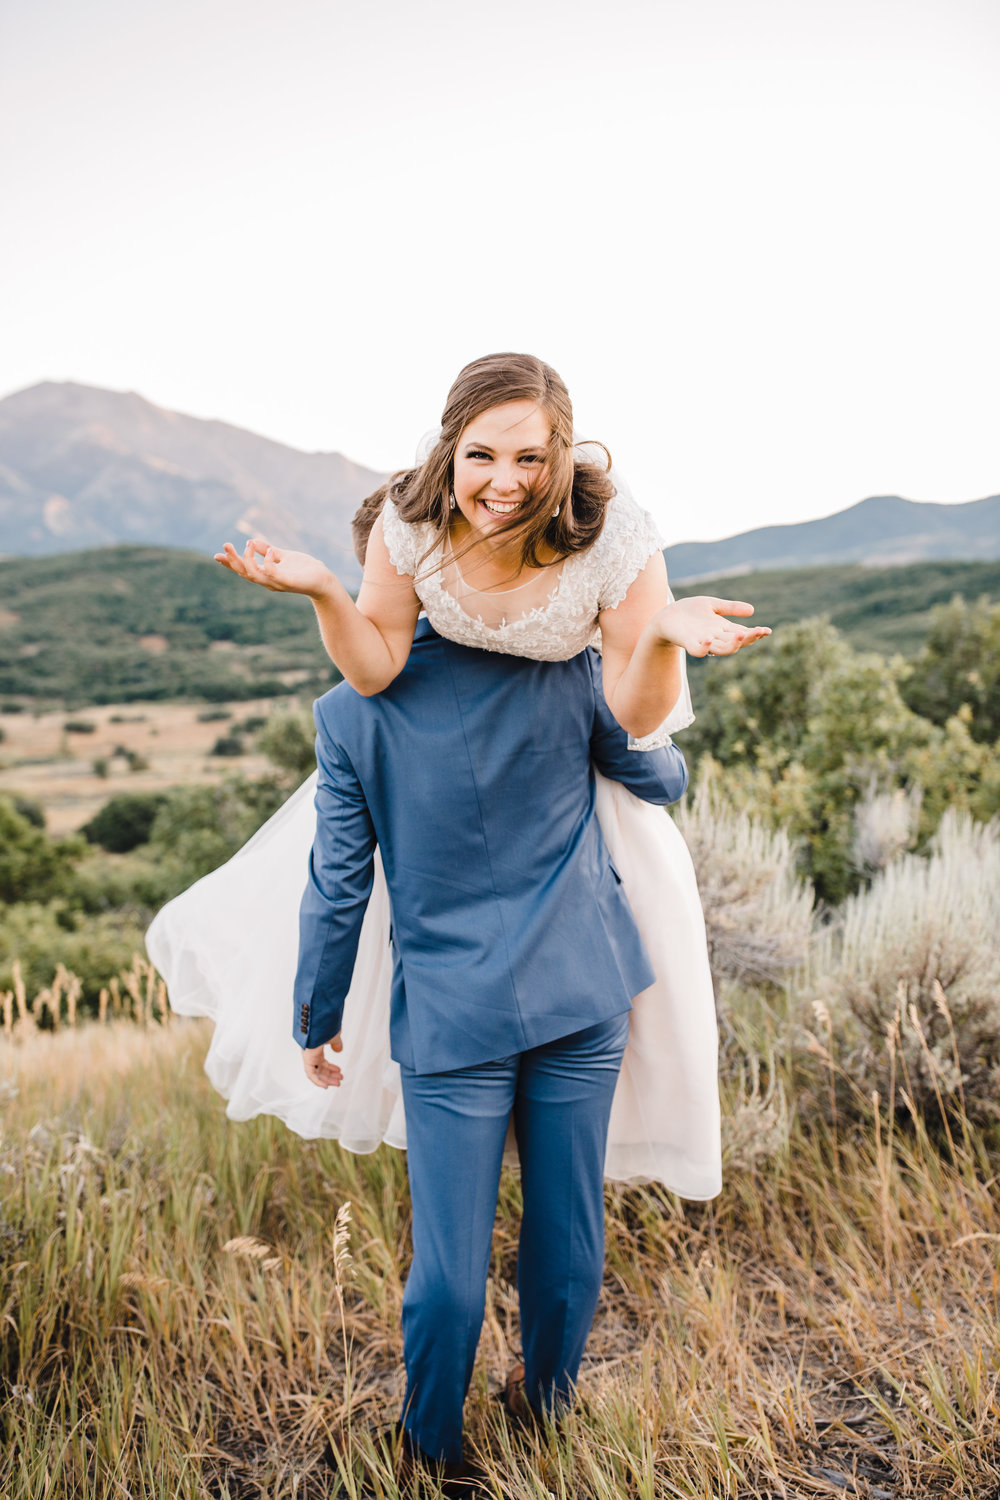 logan utah professional wedding photographer piggy back smiling laughing mountains silly